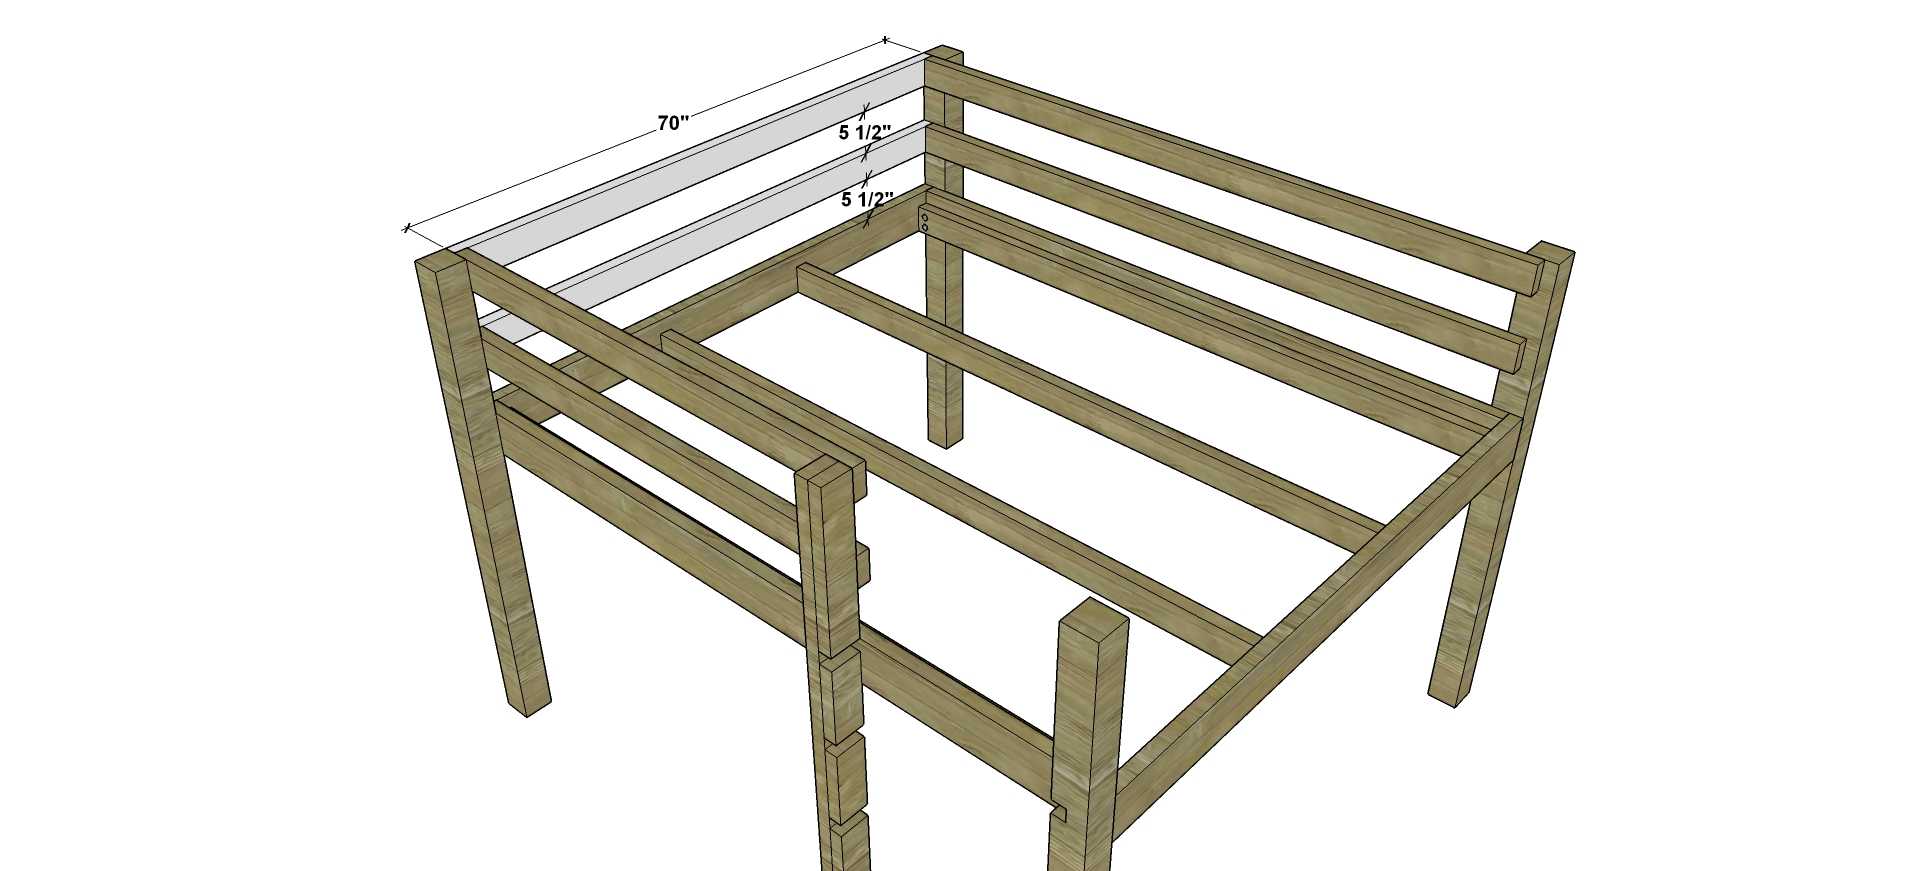 Awesome Attach the Upper Head Rails on the side opposite where you choose to put the ladder in my example this would be the left side